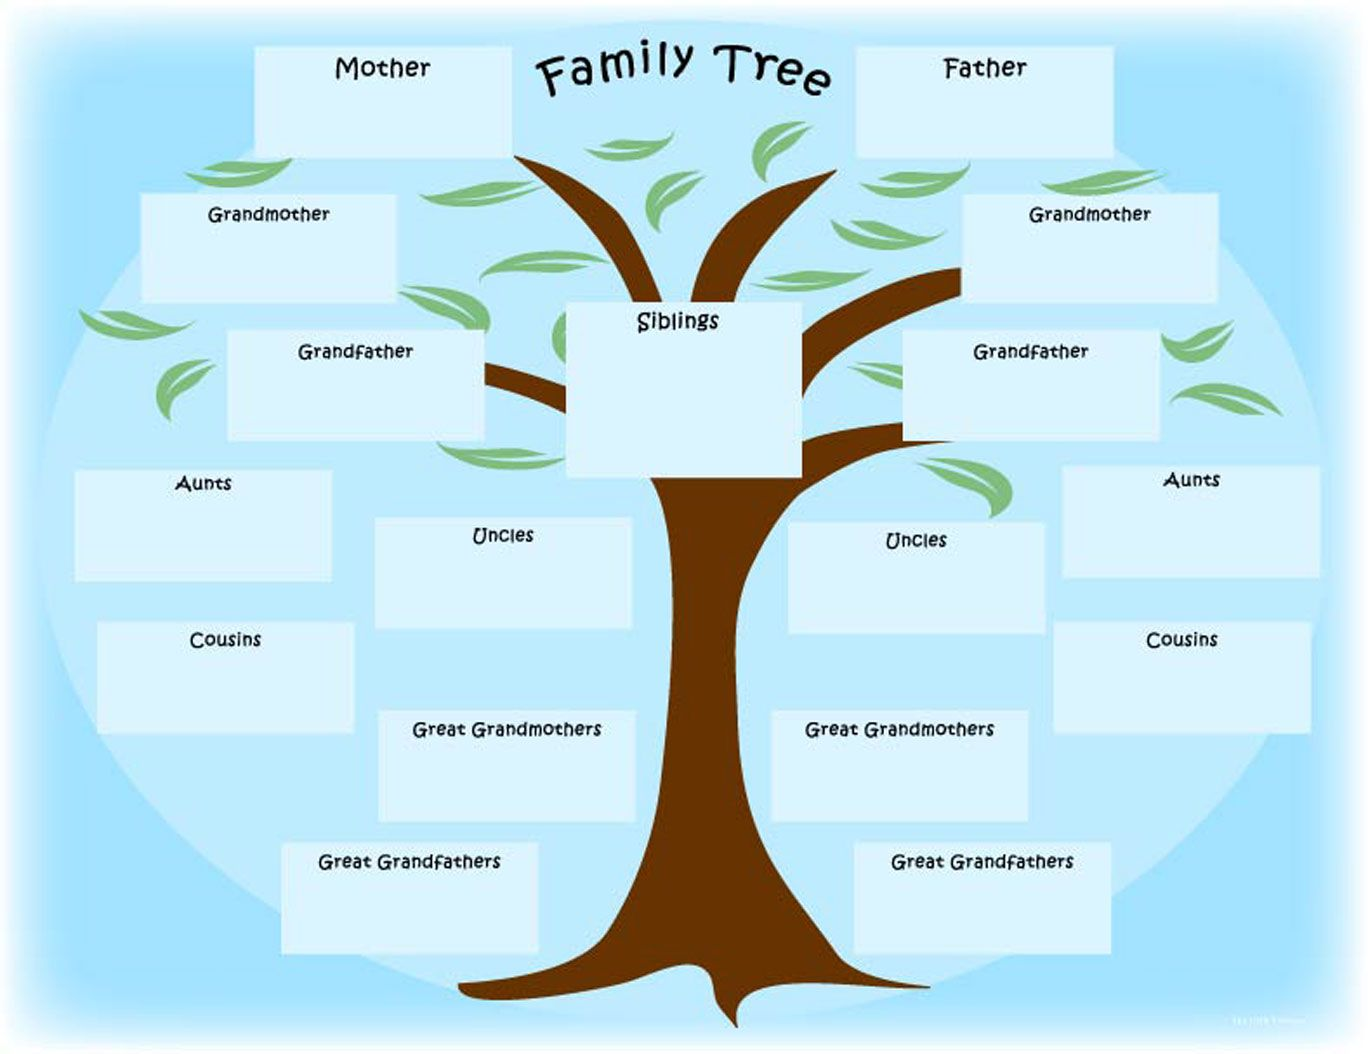 009 Fantastic Family Tree Template Online Example  Free Maker ExcelFull